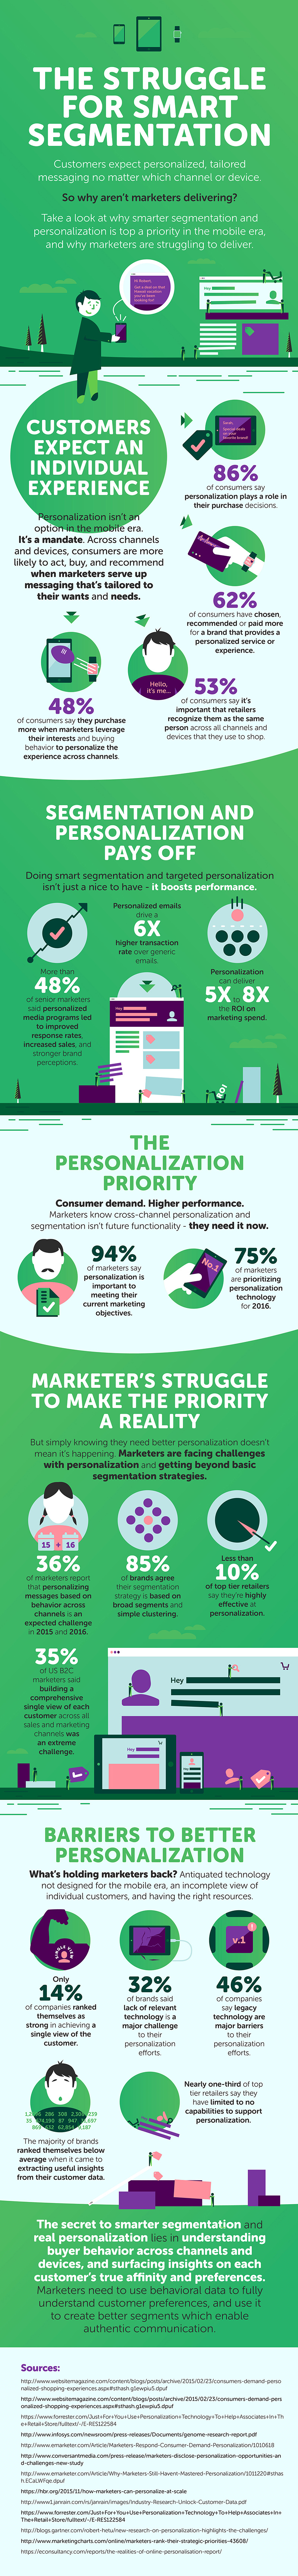 Customers expect personalized, tailored messaging no matter which channel or electronic device they may be using.